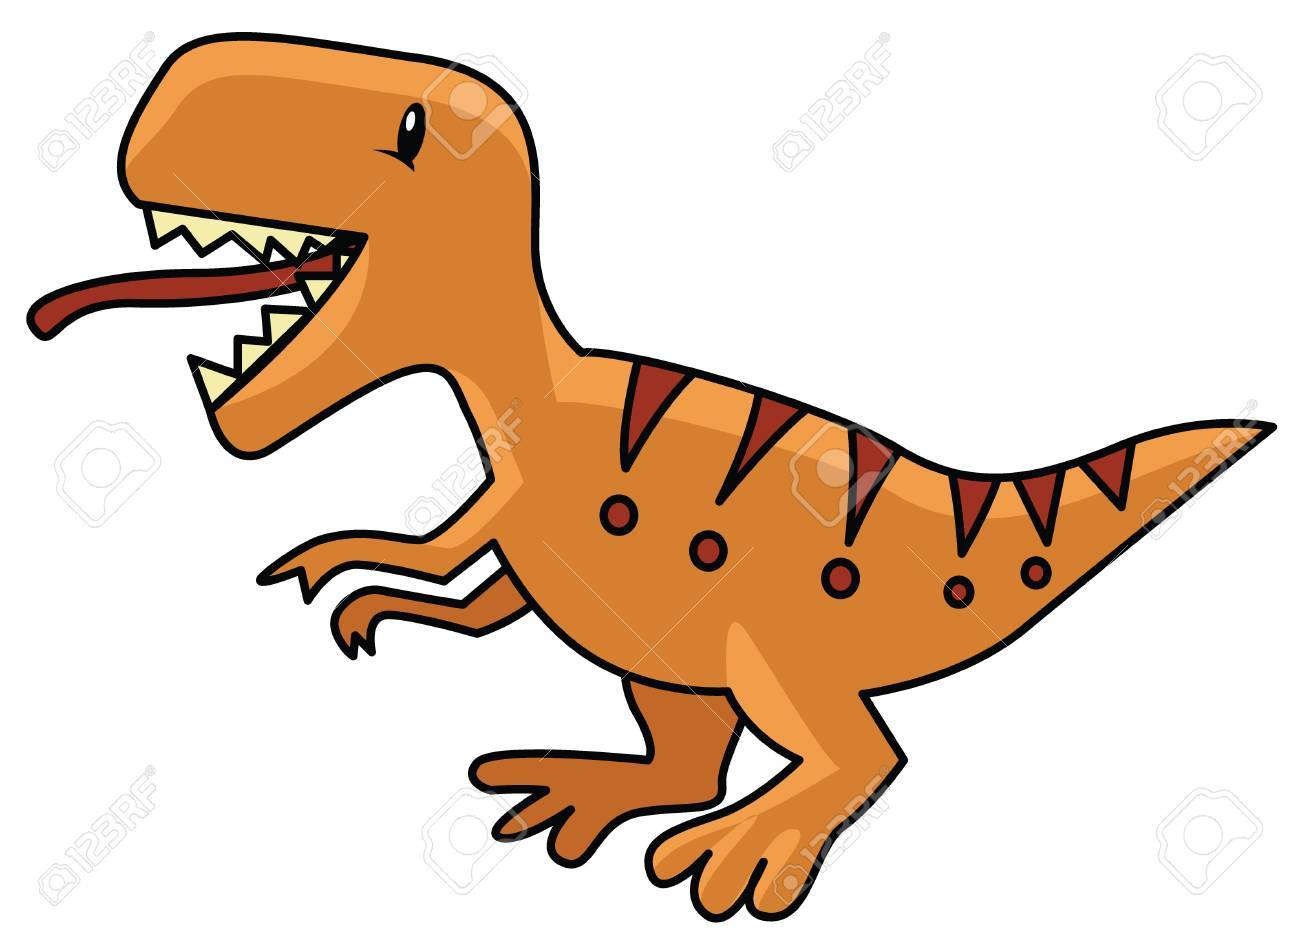 funny clipart of baby dinosaur royalty free cliparts vectors and rh 123rf com funny clip art free funny clip art pictures